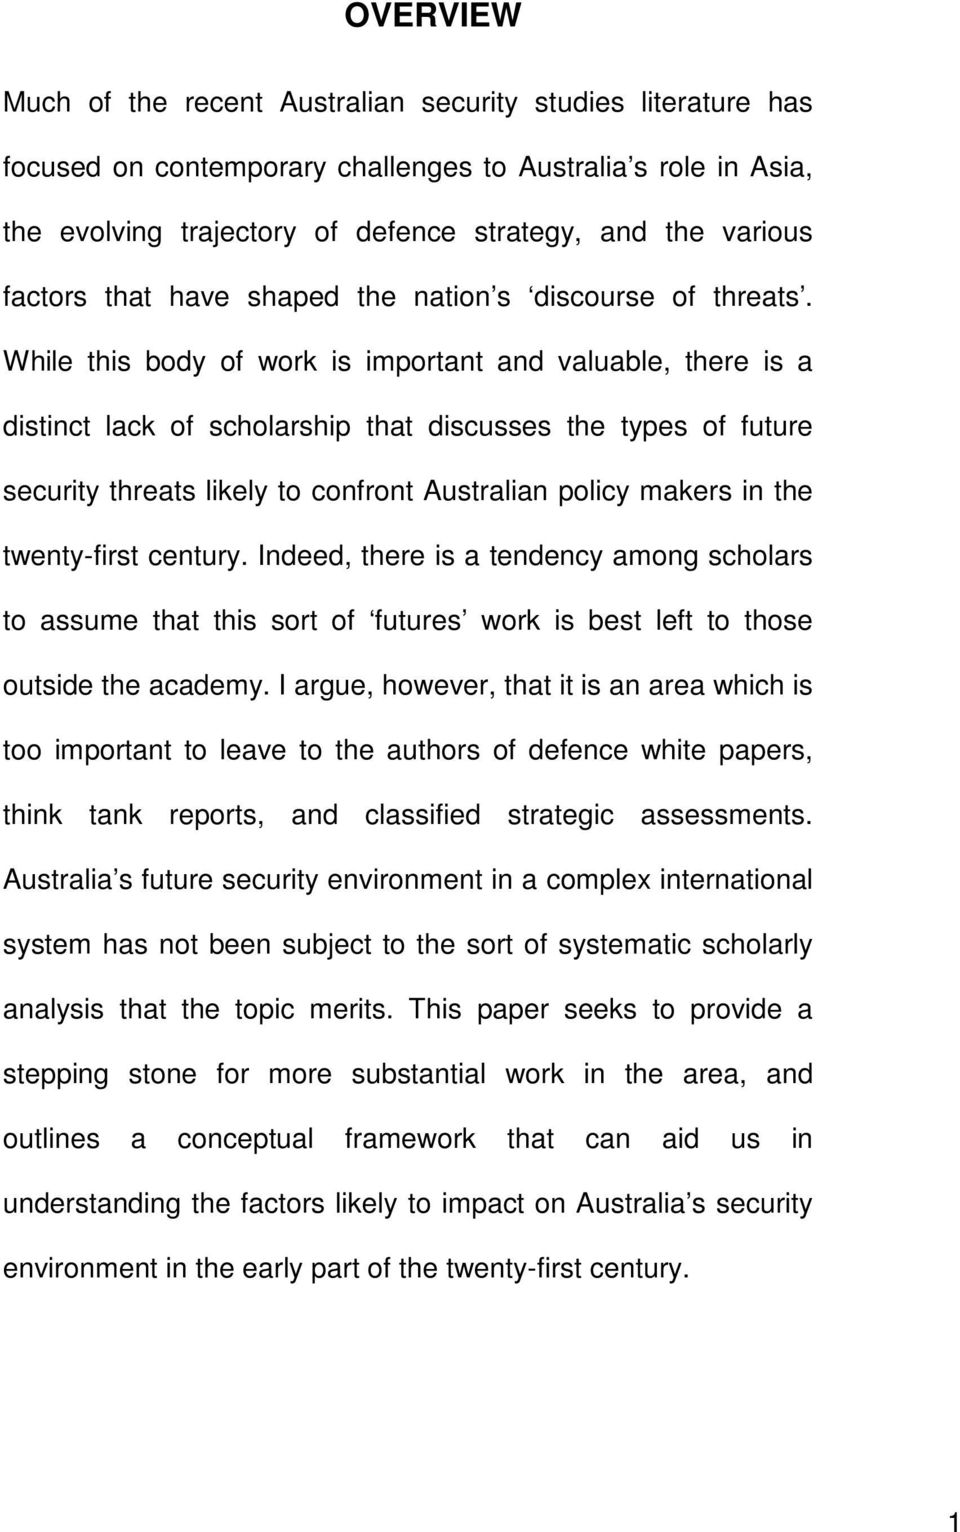 While this body of work is important and valuable, there is a distinct lack of scholarship that discusses the types of future security threats likely to confront Australian policy makers in the